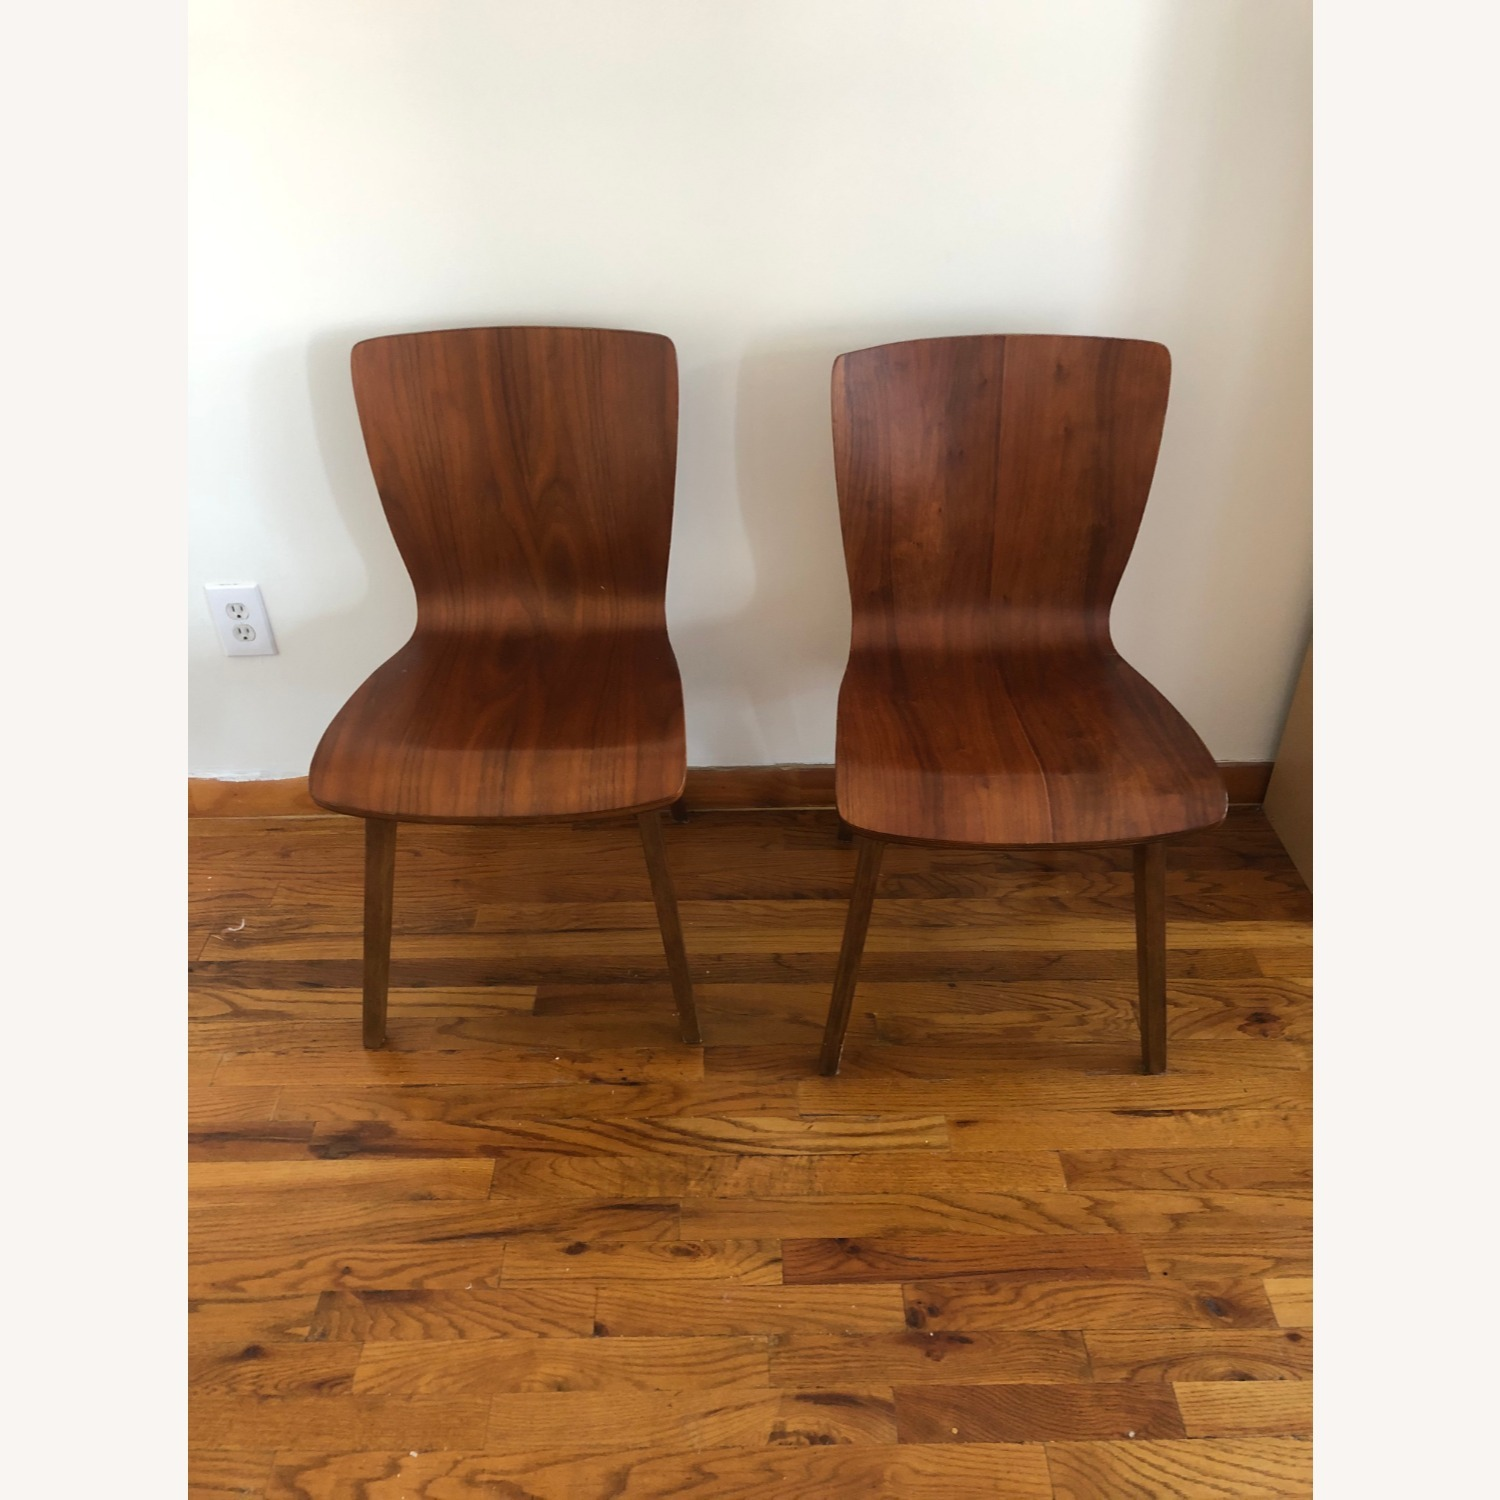 West Elm Crest Bentwood Dining Chair (Set of 2) - image-2